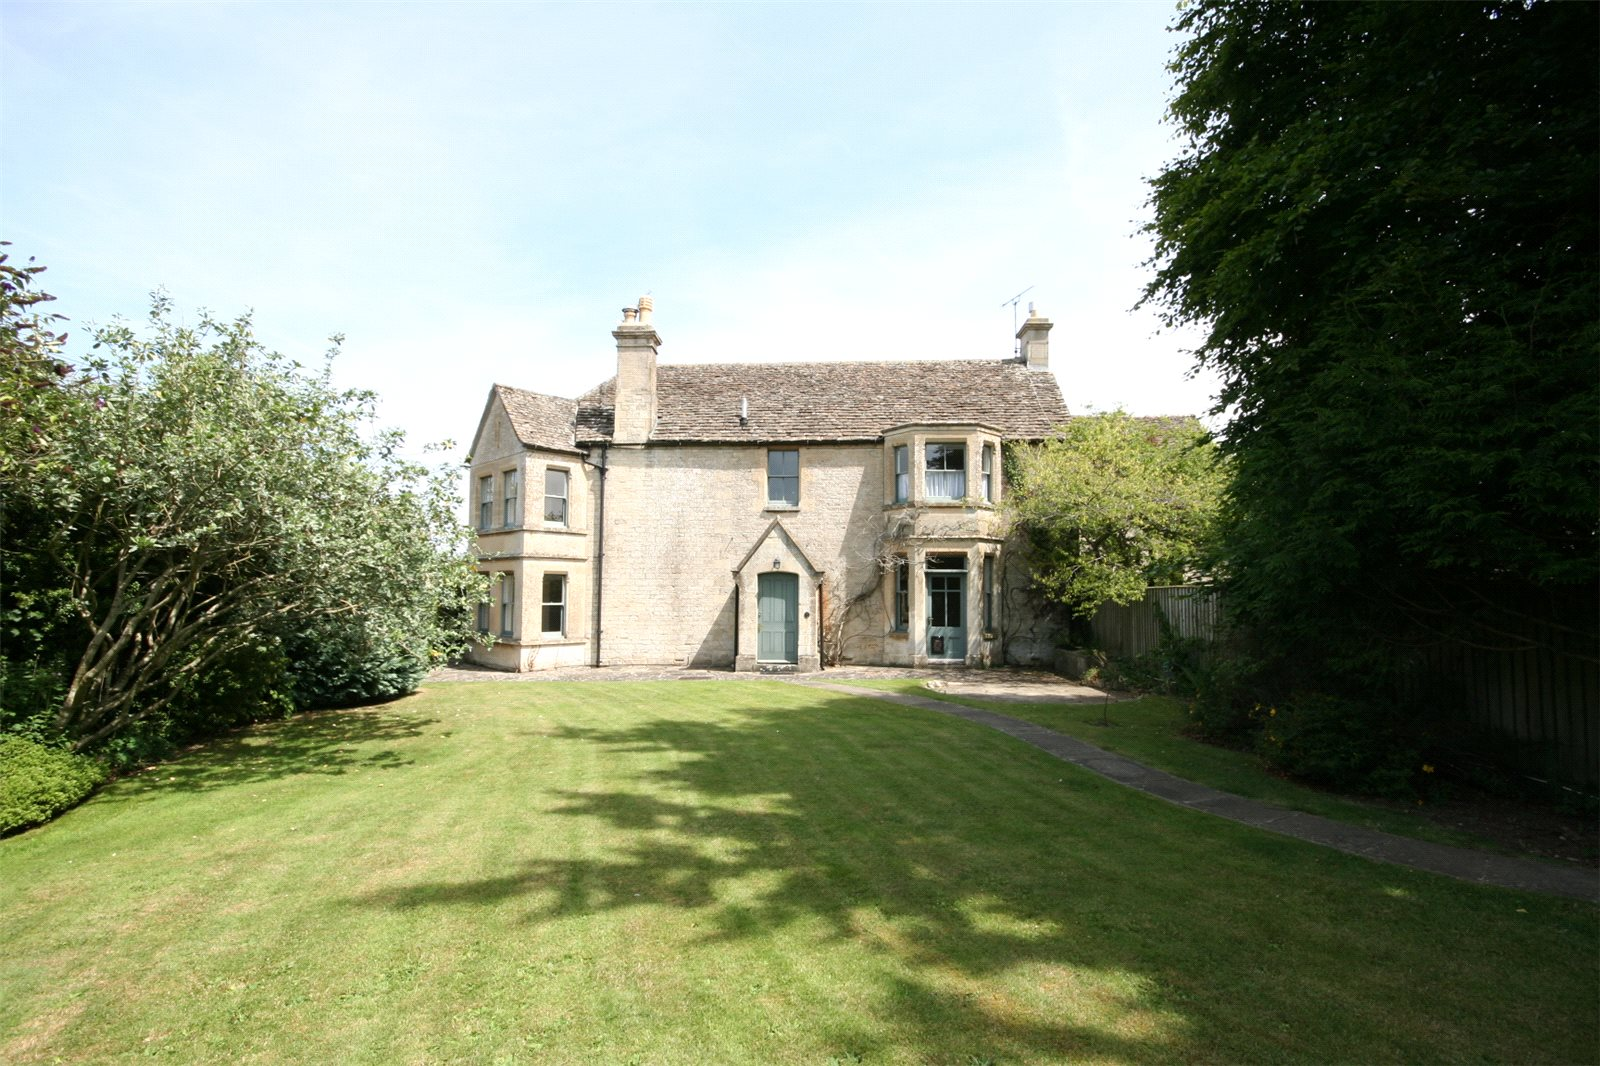 Additional photo for property listing at Kemble, Cirencester, Gloucestershire, GL7 Cirencester, Anh Quốc